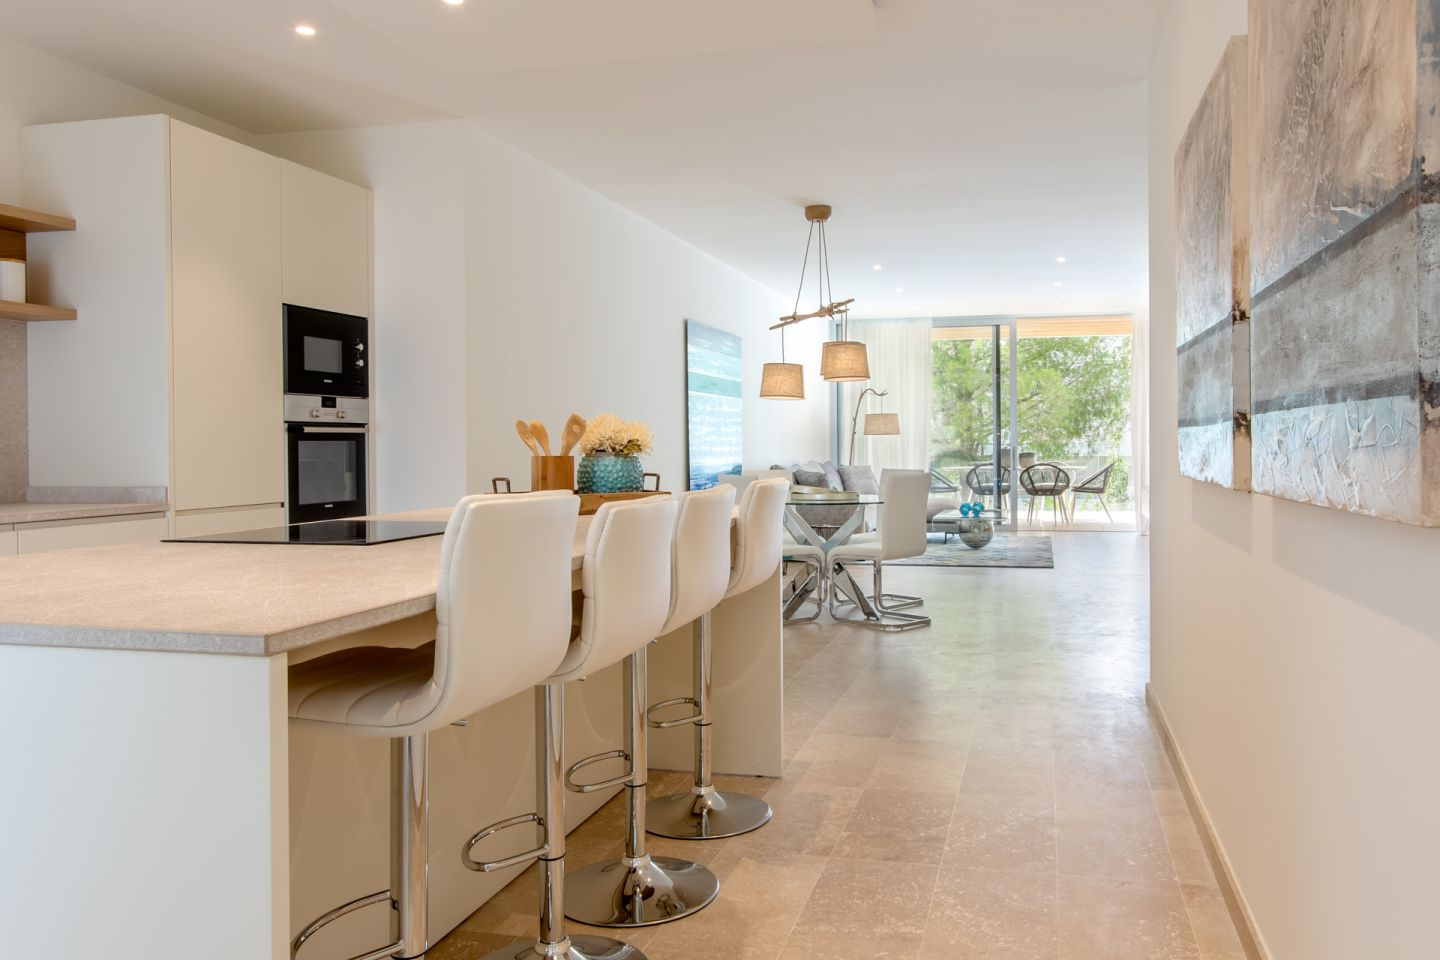 3 Bed Ground Floor for sale in PUERTO POLLENSA 2